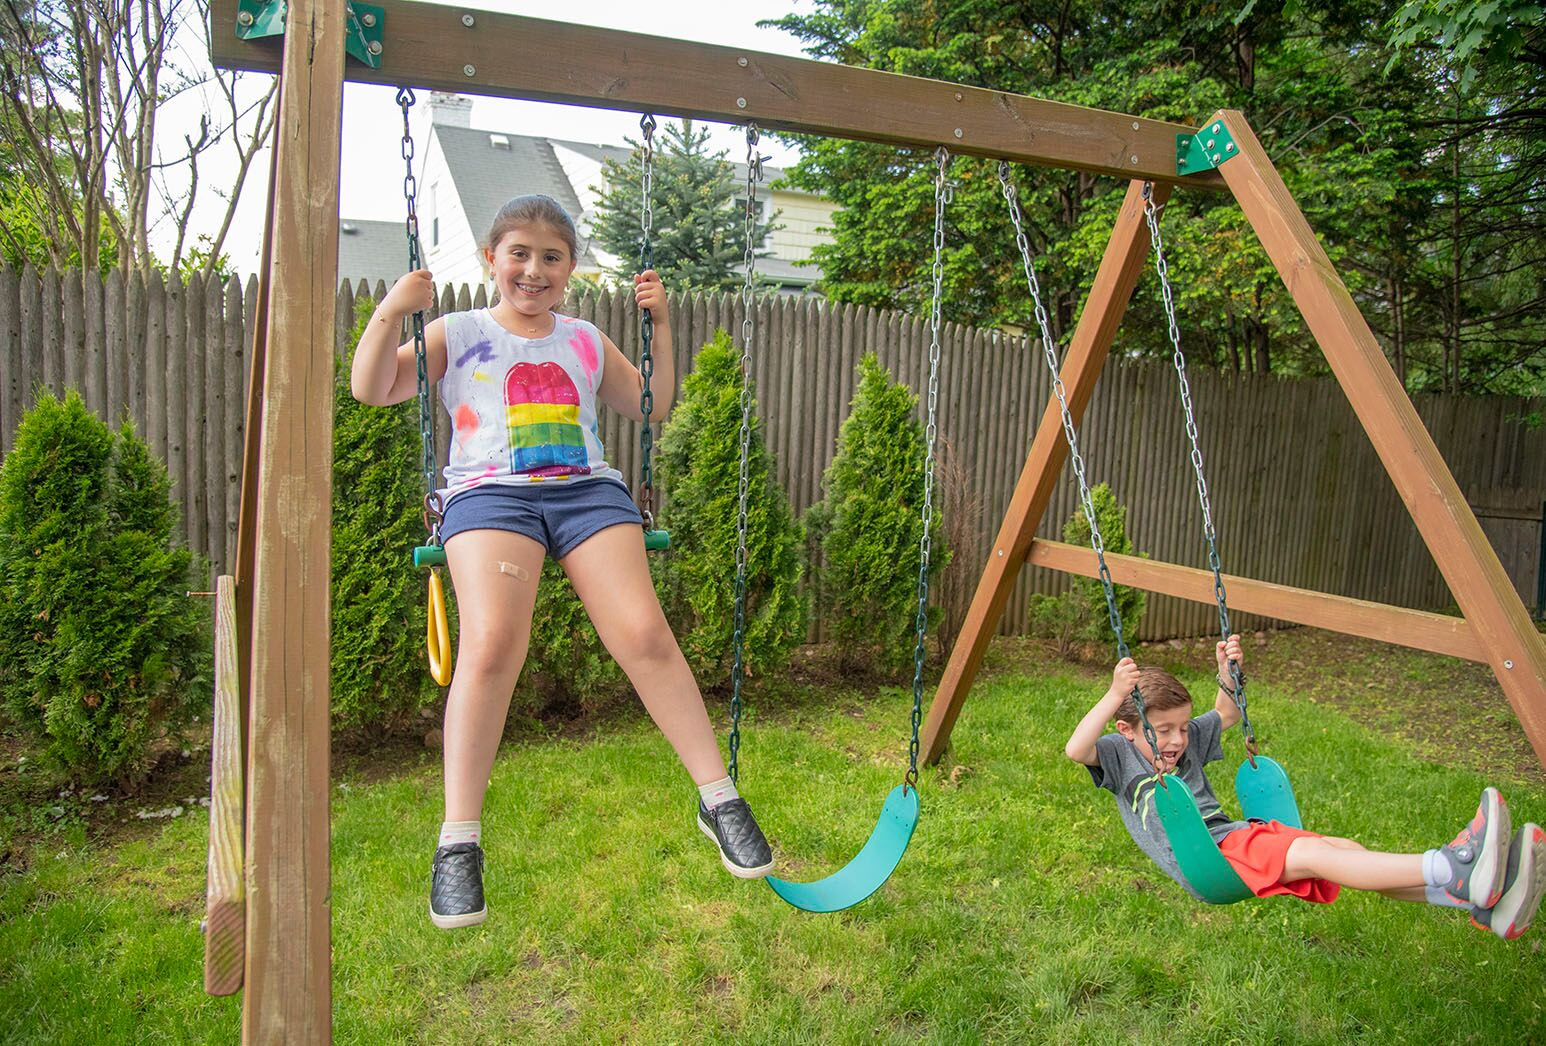 Young boy and girl swinging on a swing set in their backyard.